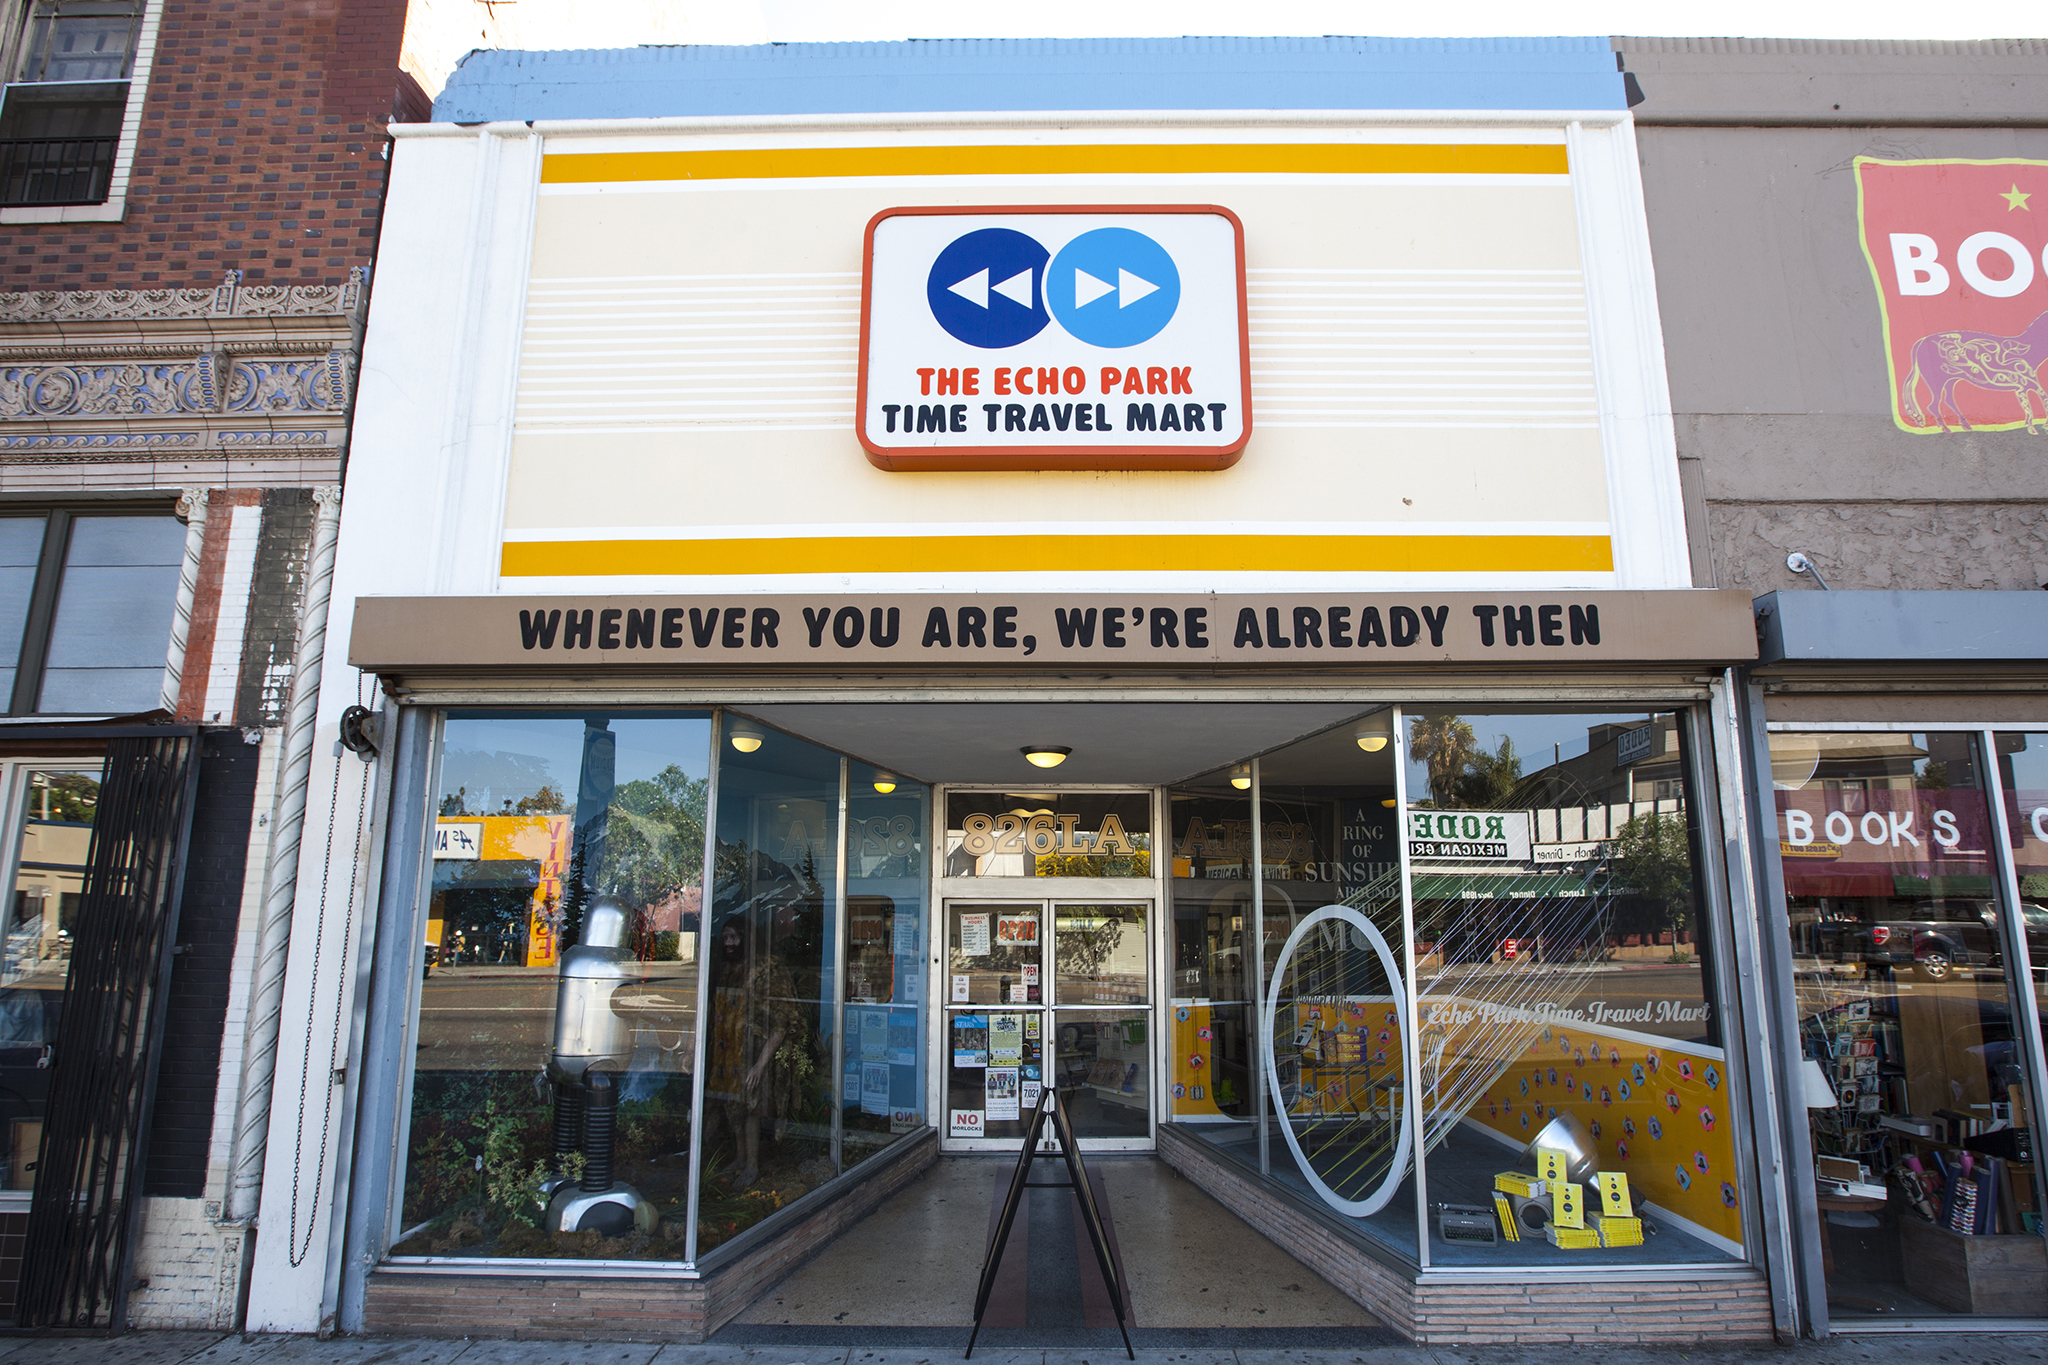 Best place to travel back in time while helping kids learn to read: Echo Park Time Travel Mart